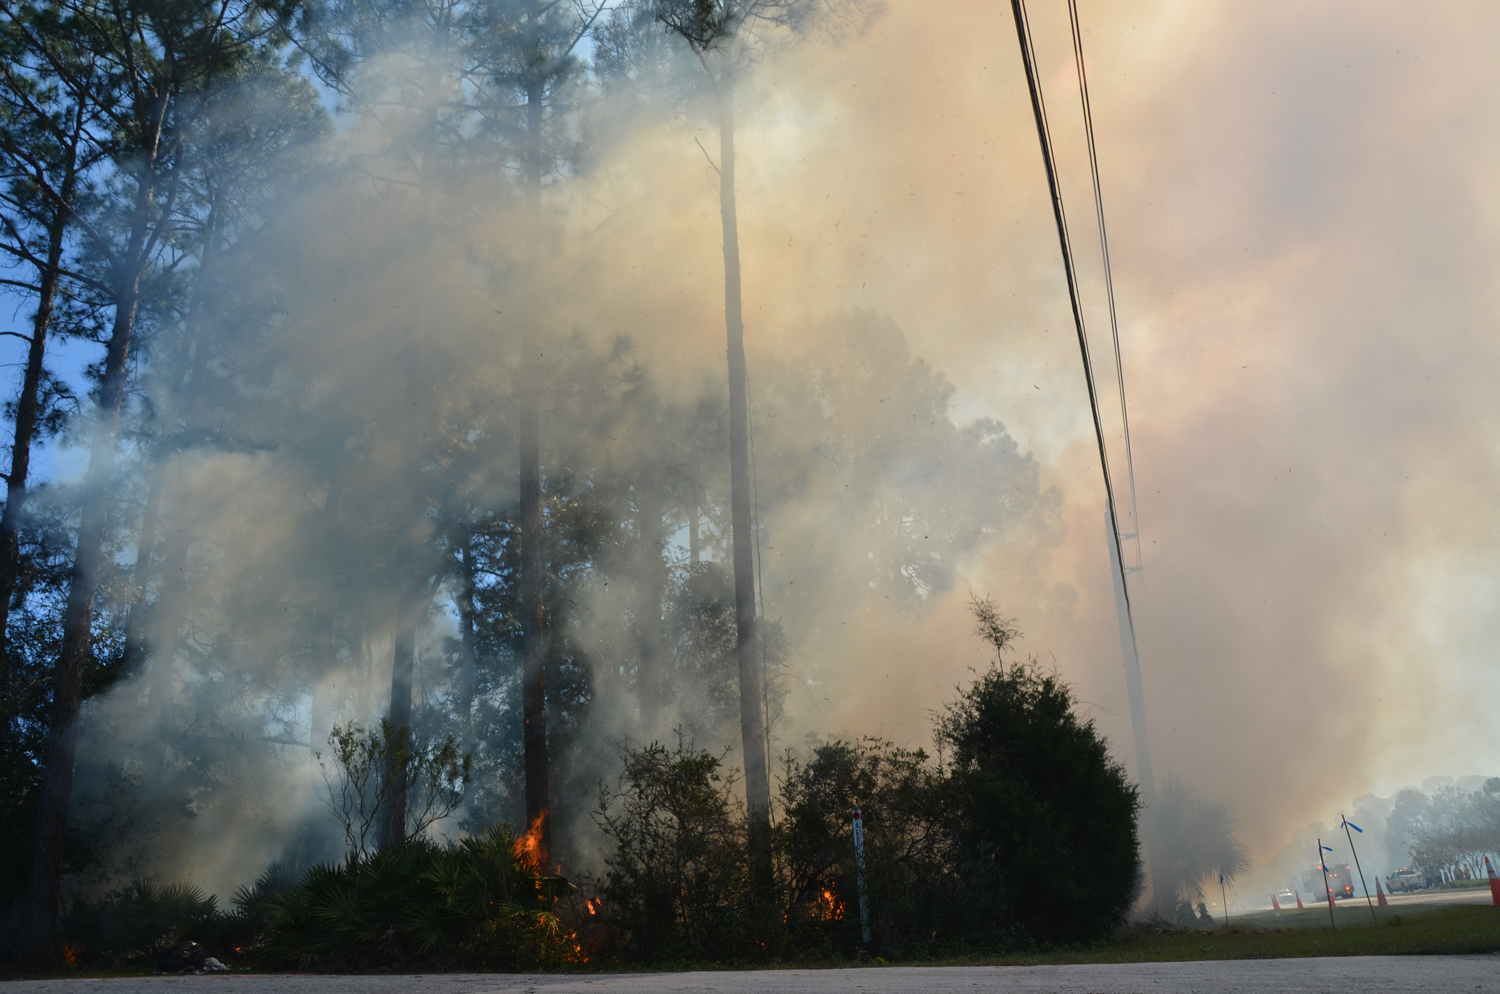 The fire along Seminole Woods Blvd. started as a 70 by 70 blaze but was then intentionally broadened to an acre to prevent fire issues later. (© FlaglerLive)